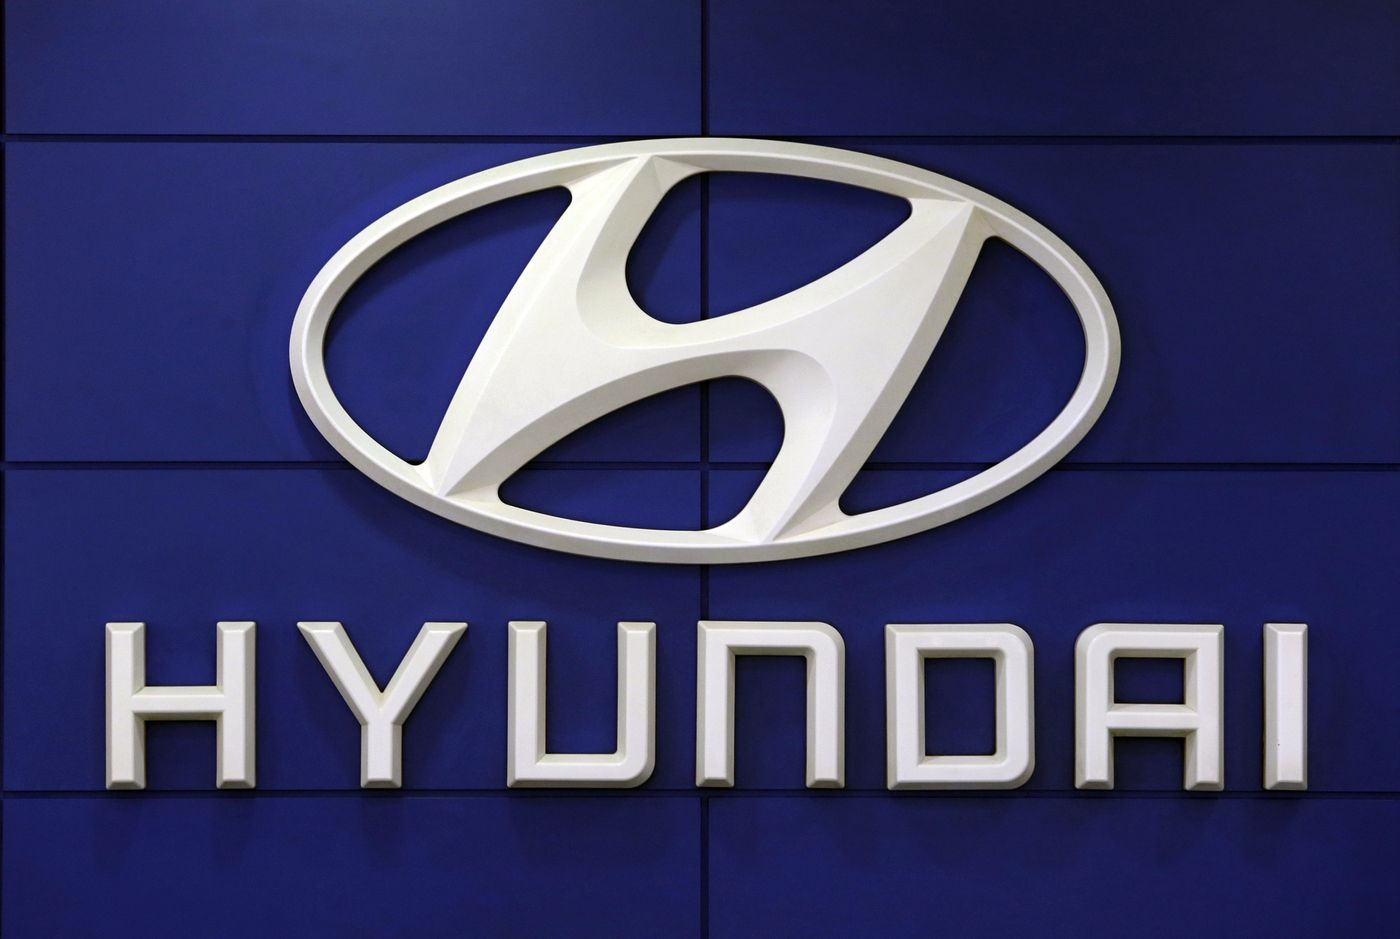 Hyundai and Kia recalling 168,000 cars over engine fire problem